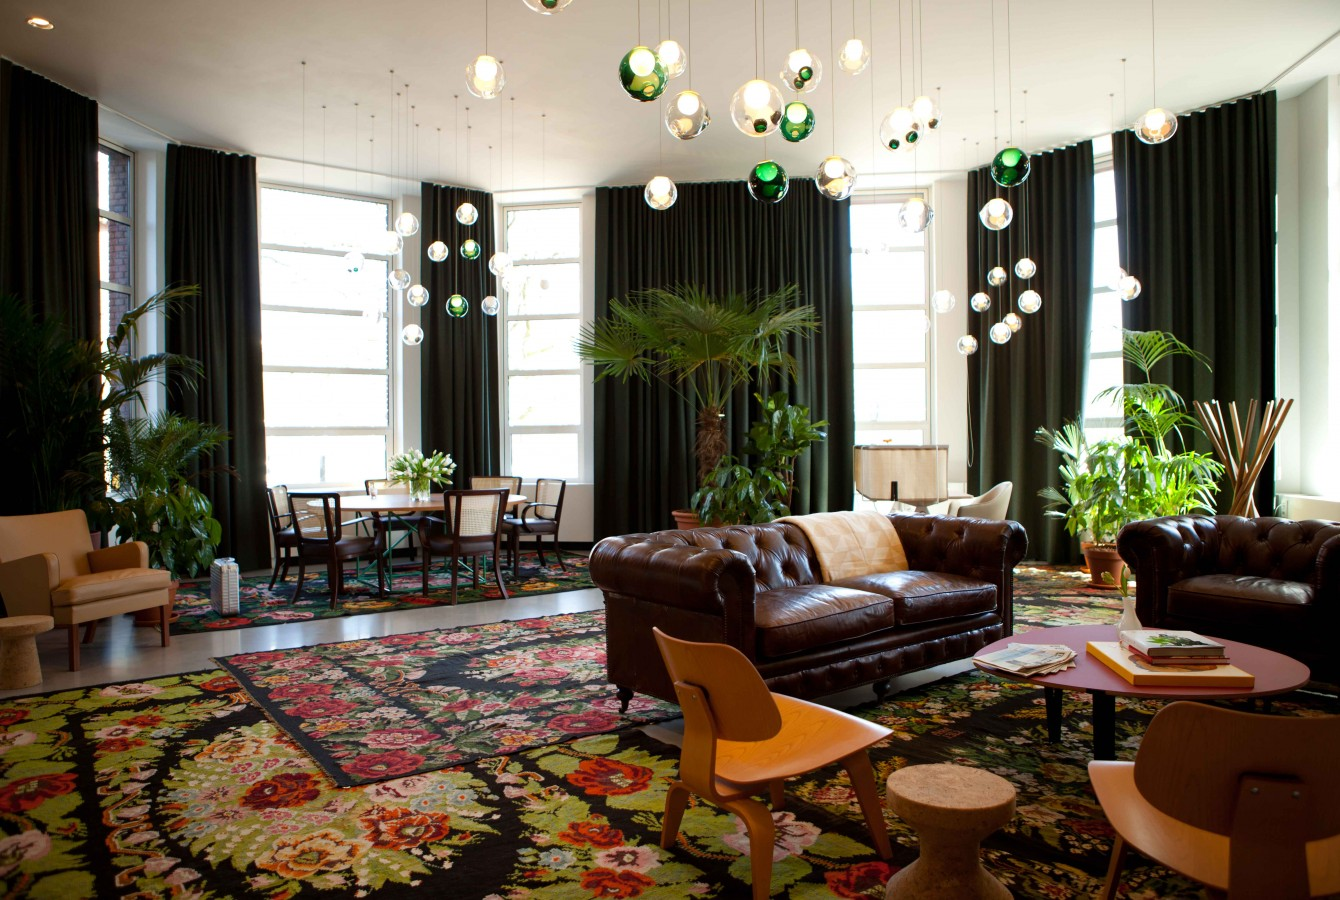 Spaces Works - The Hague, The Hague